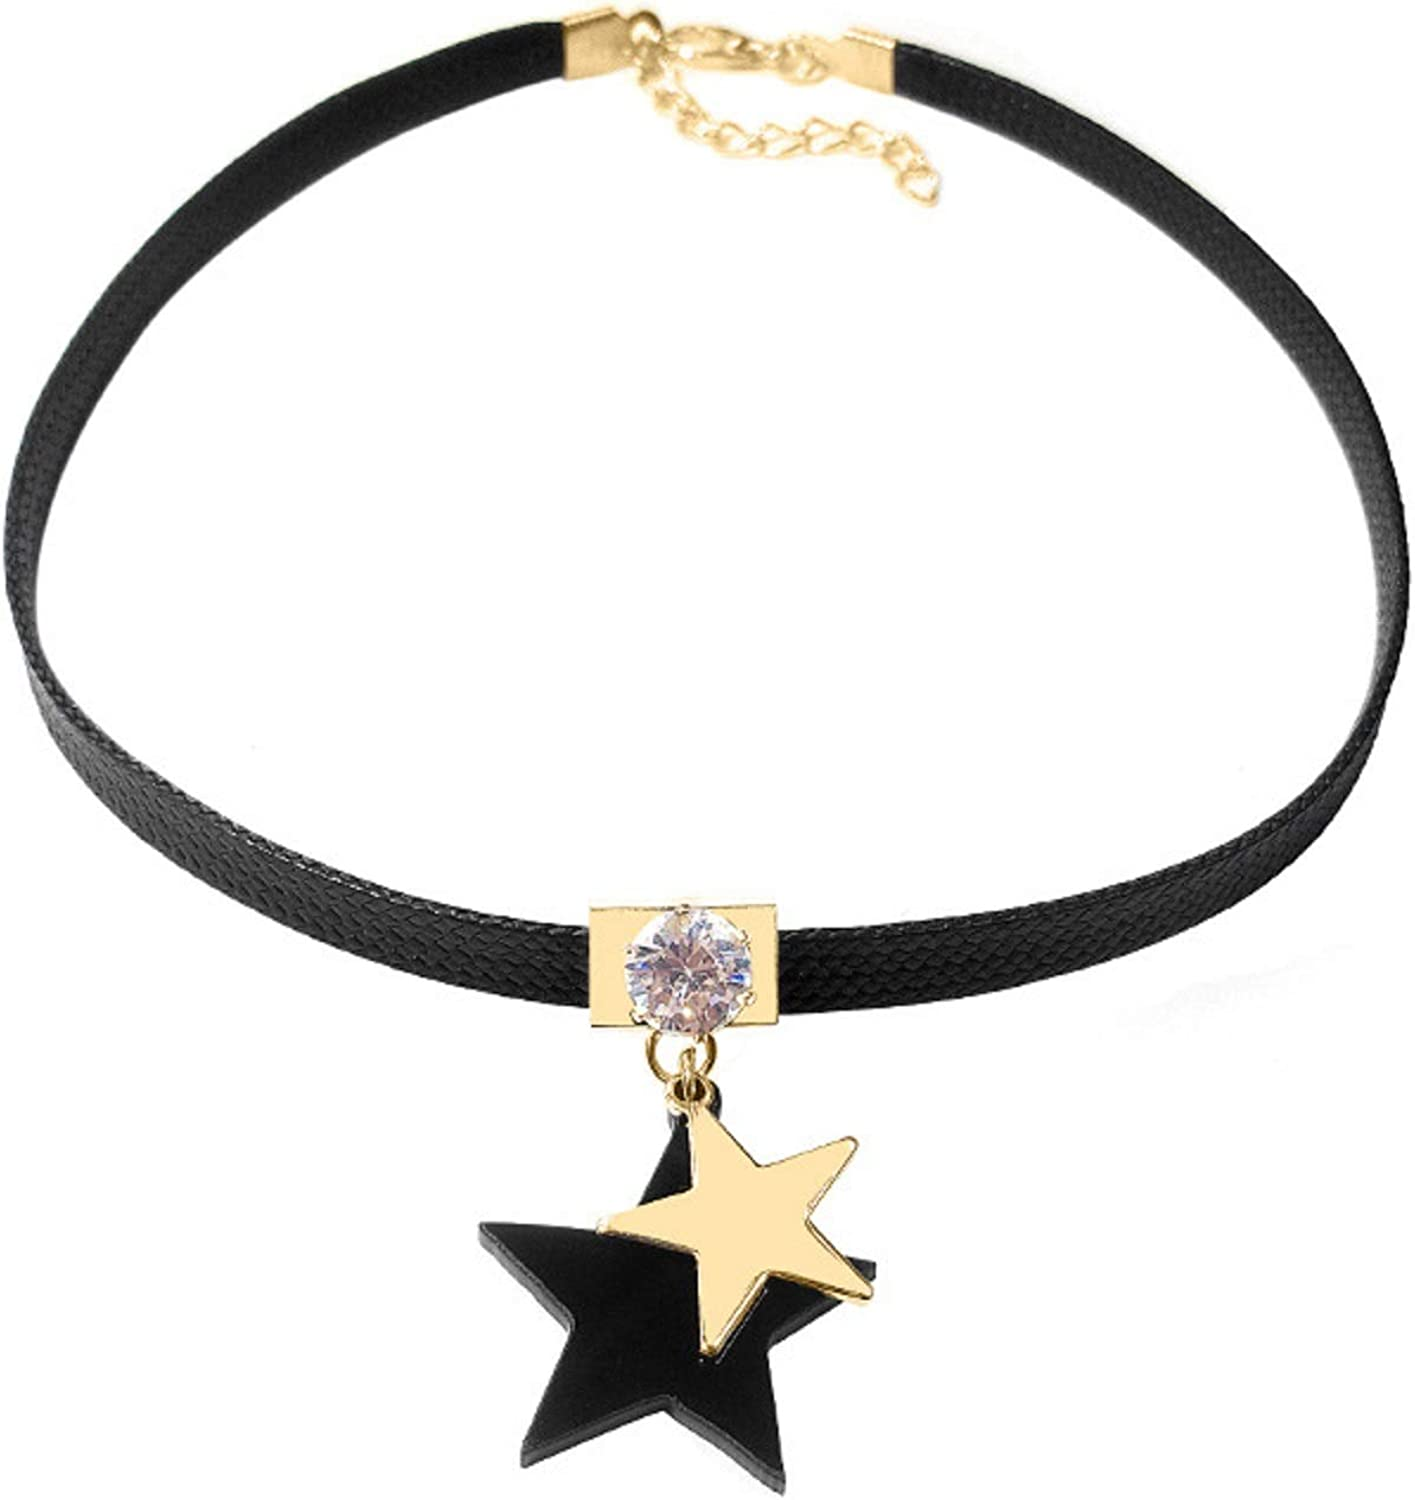 GUANGZHENSPD Black Vegan Leather Choker and Collar Necklace with star pendant - Adjustable